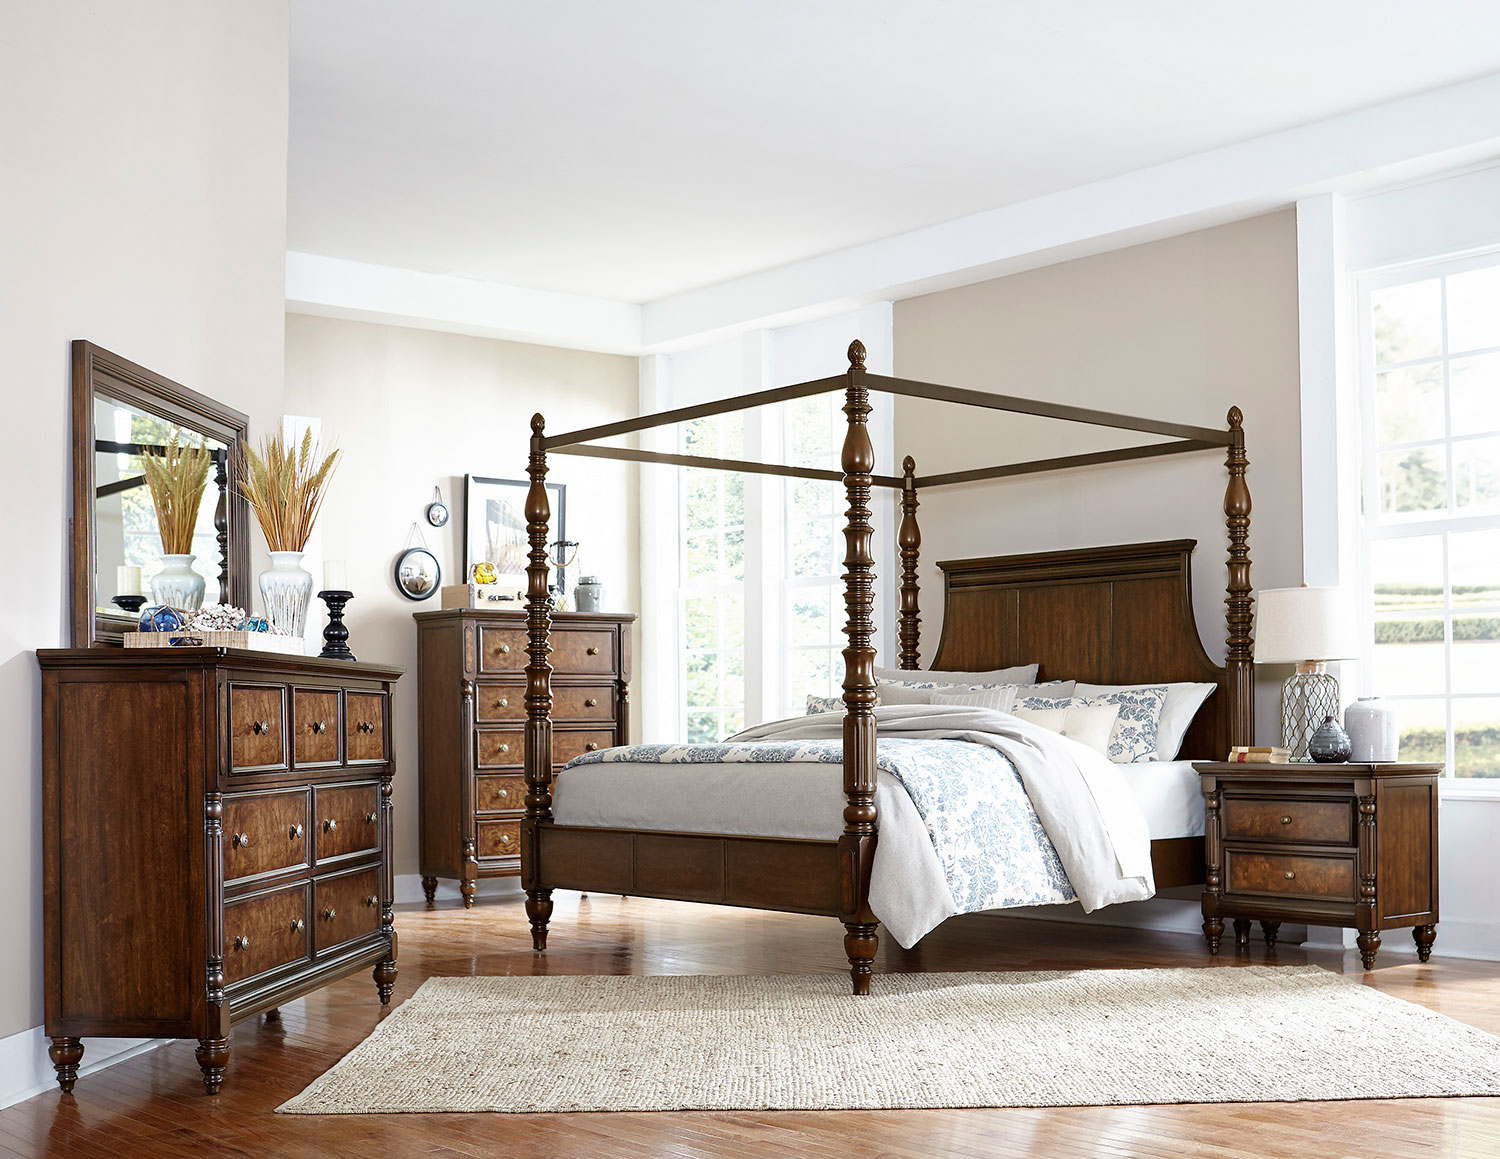 Homelegance Verlyn Canopy Bedroom Set - Cherry with Burl Accents